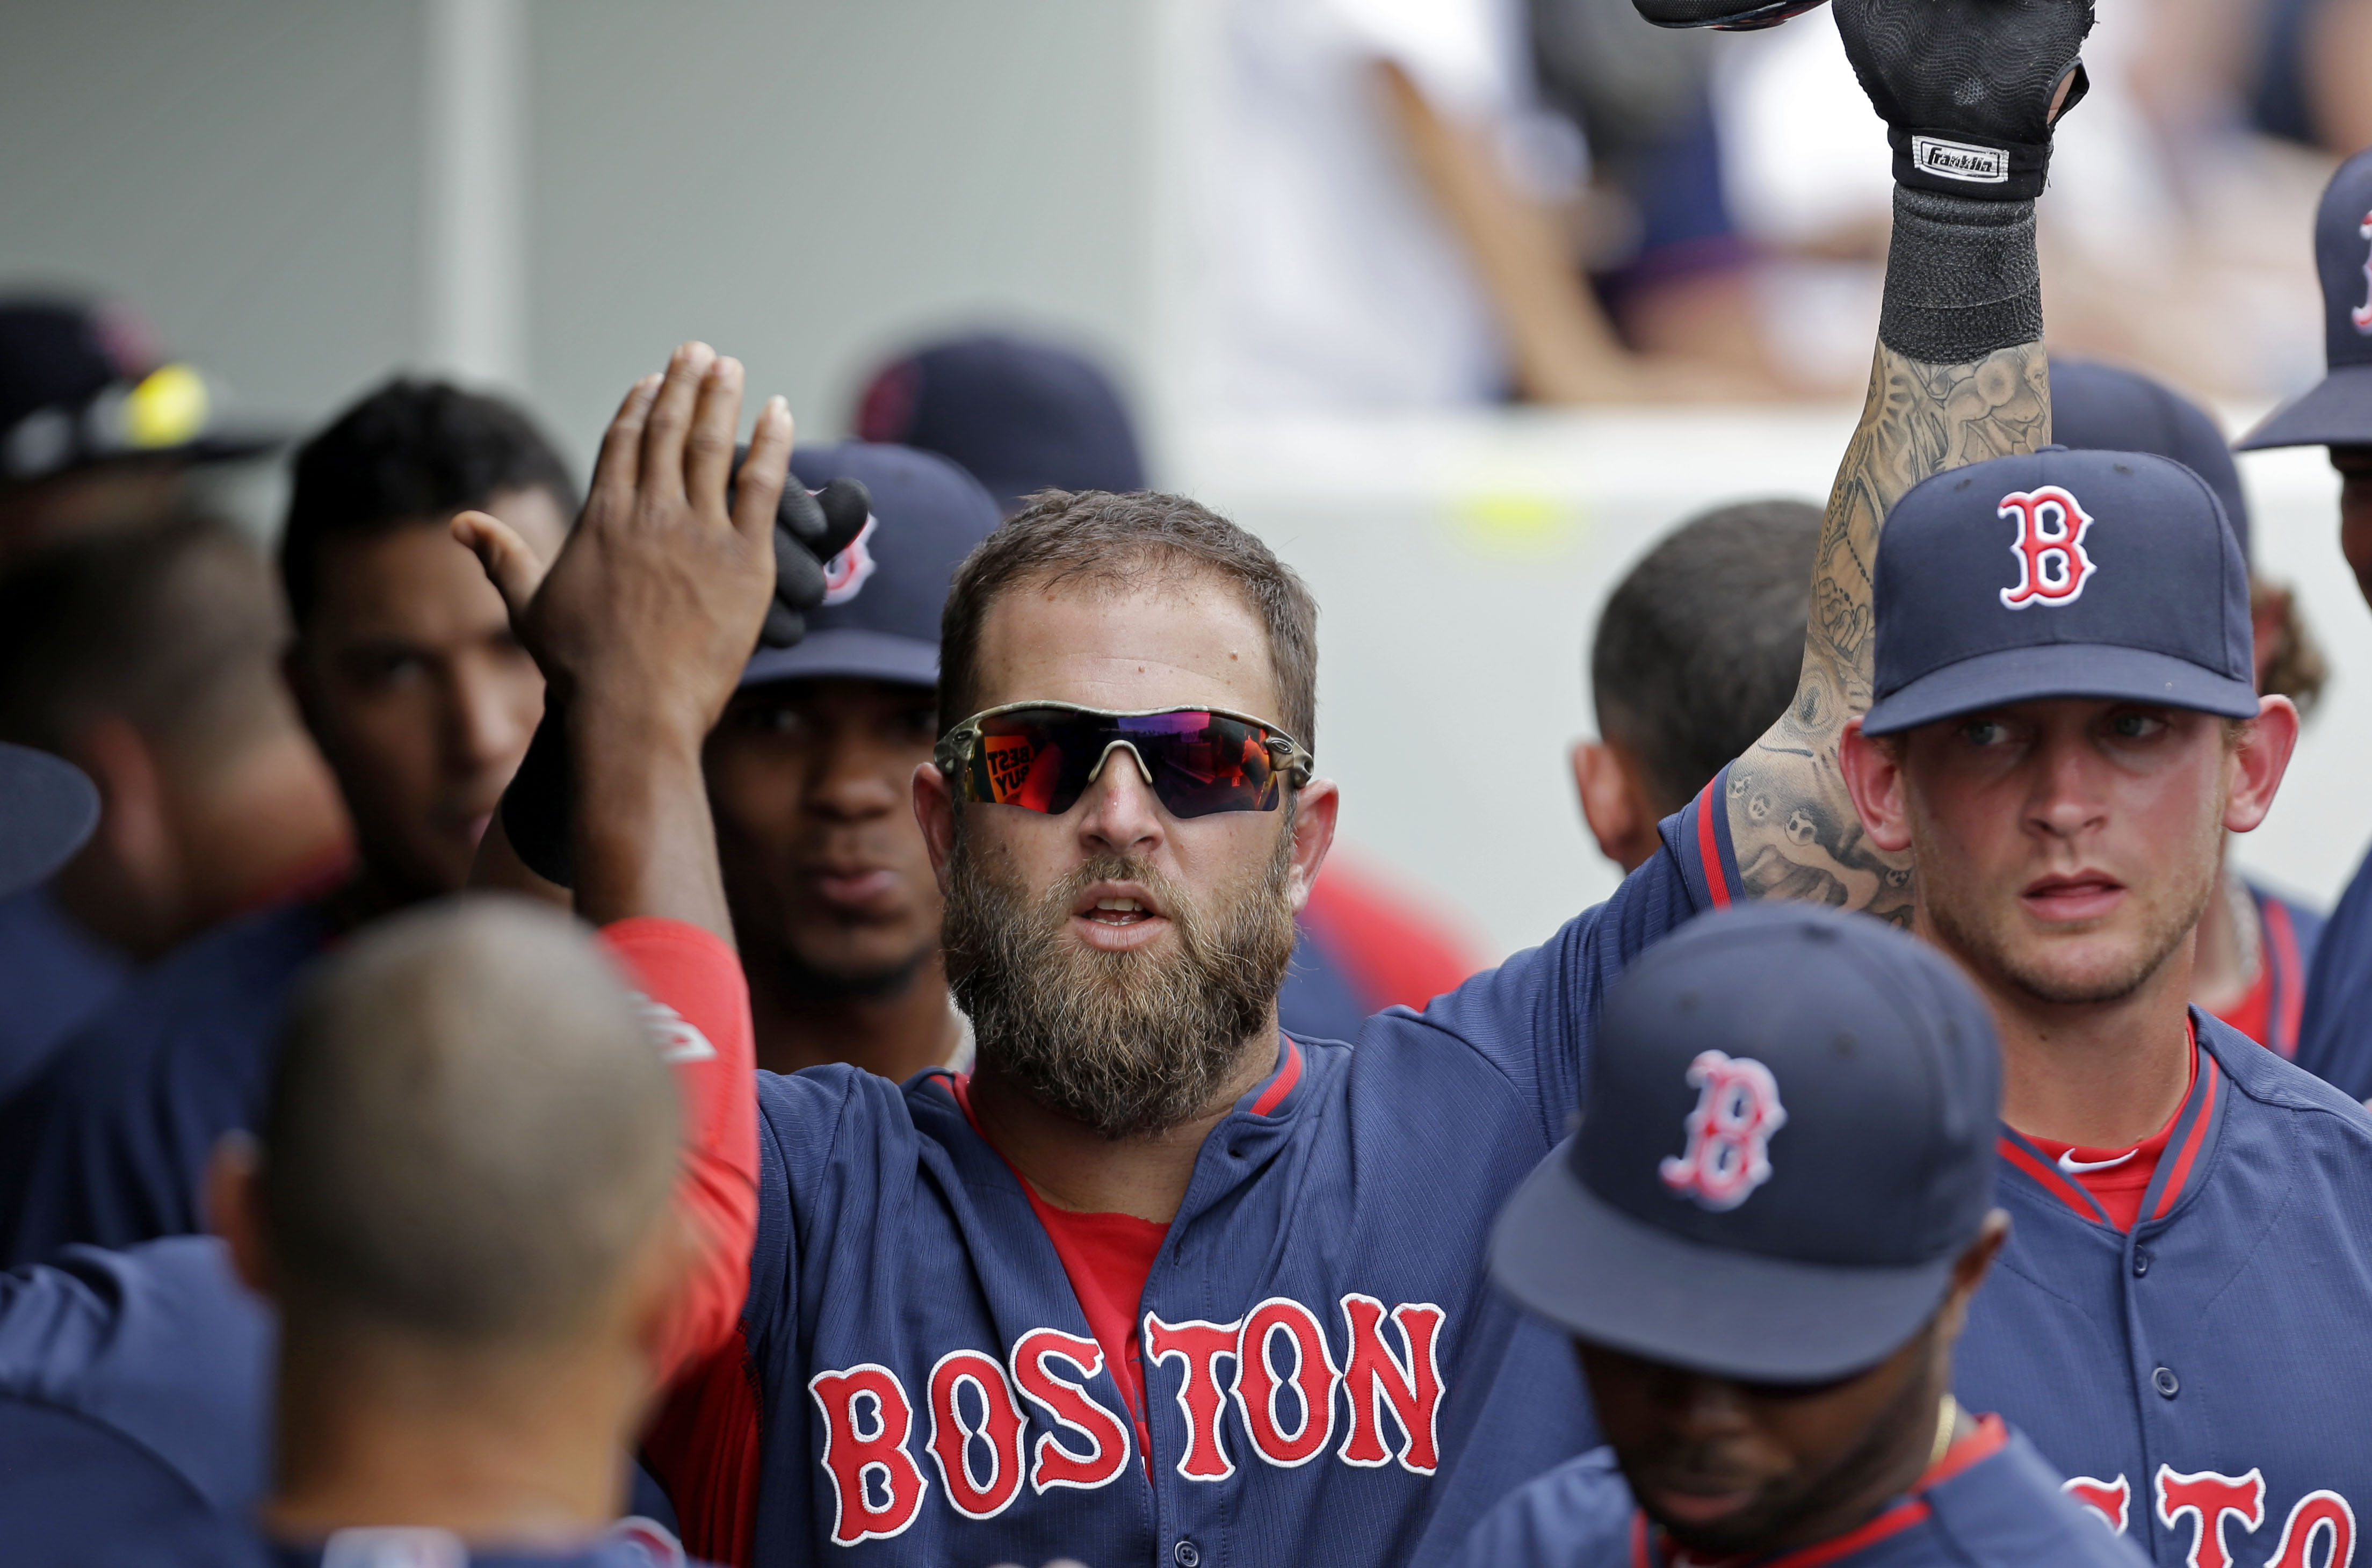 Napoli homers in Red Sox 4-0 win over Twins